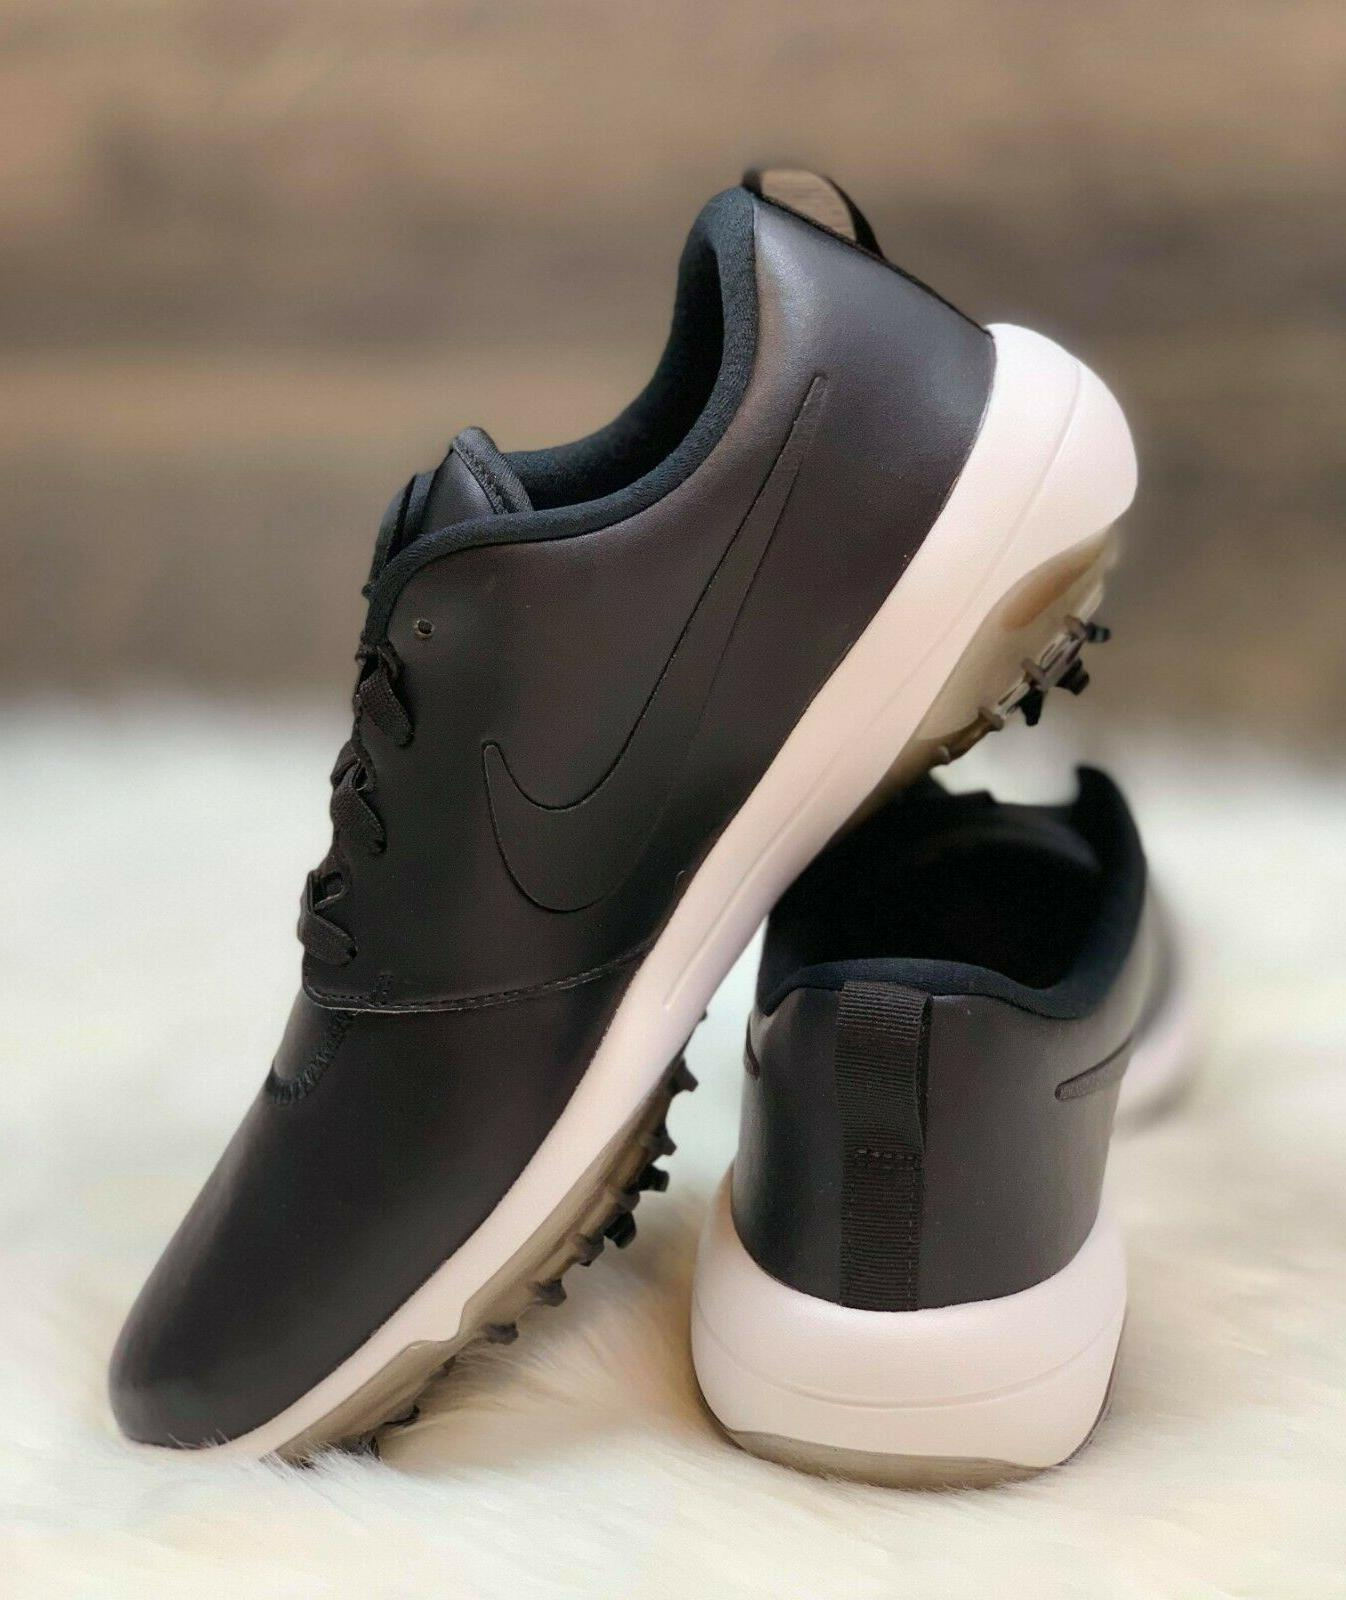 Nike Roshe Tour Golf Shoes Cleats tour Size AR5580-001